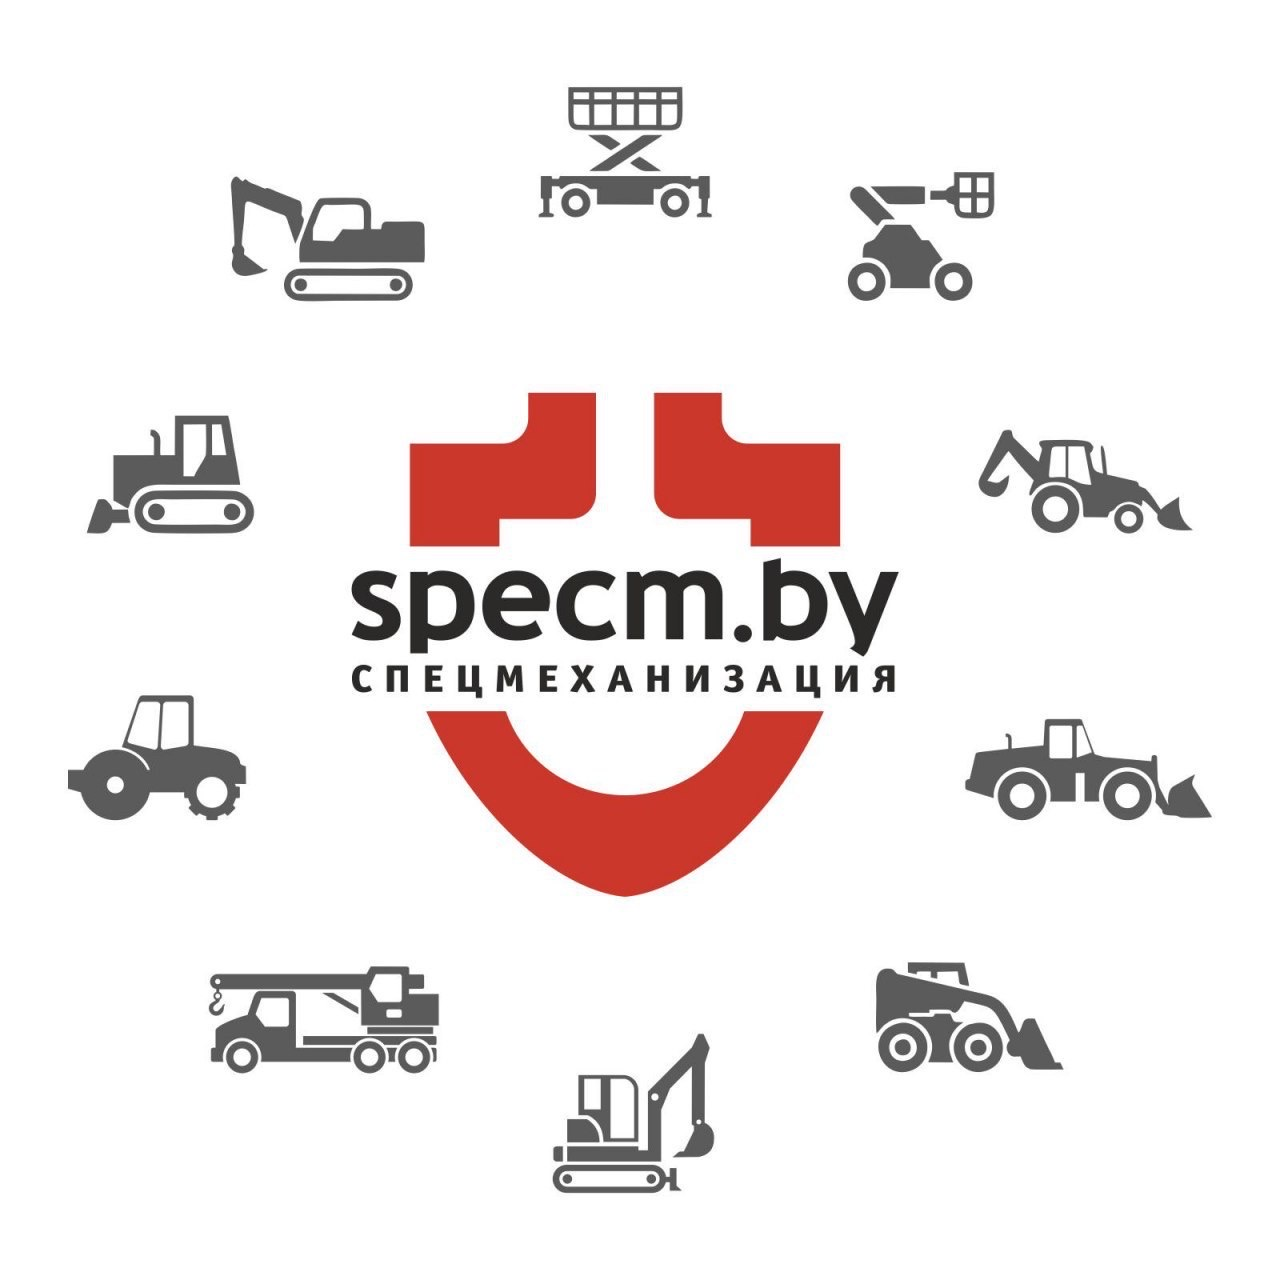 specm.by